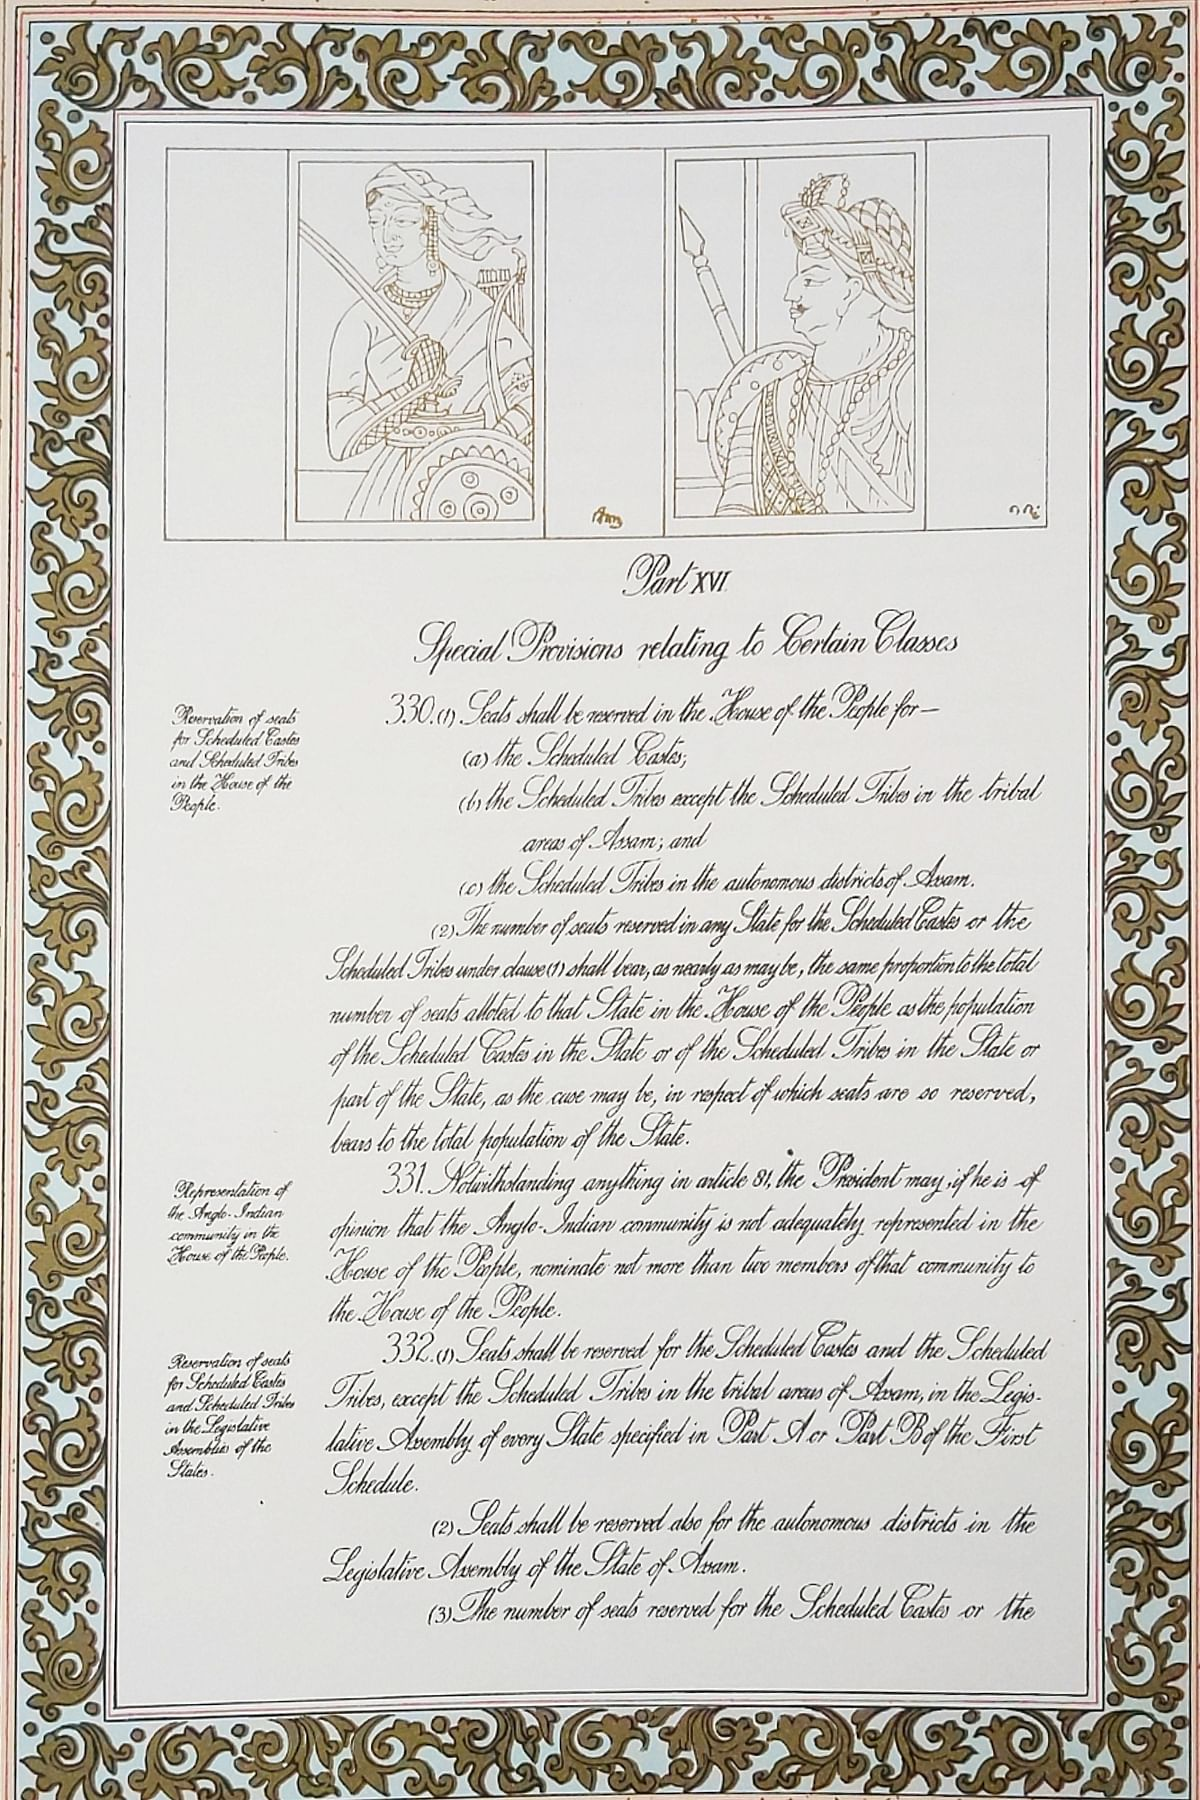 Republic Day 2020: How the illustrations in the original Constitution depict the rich cultural history of India